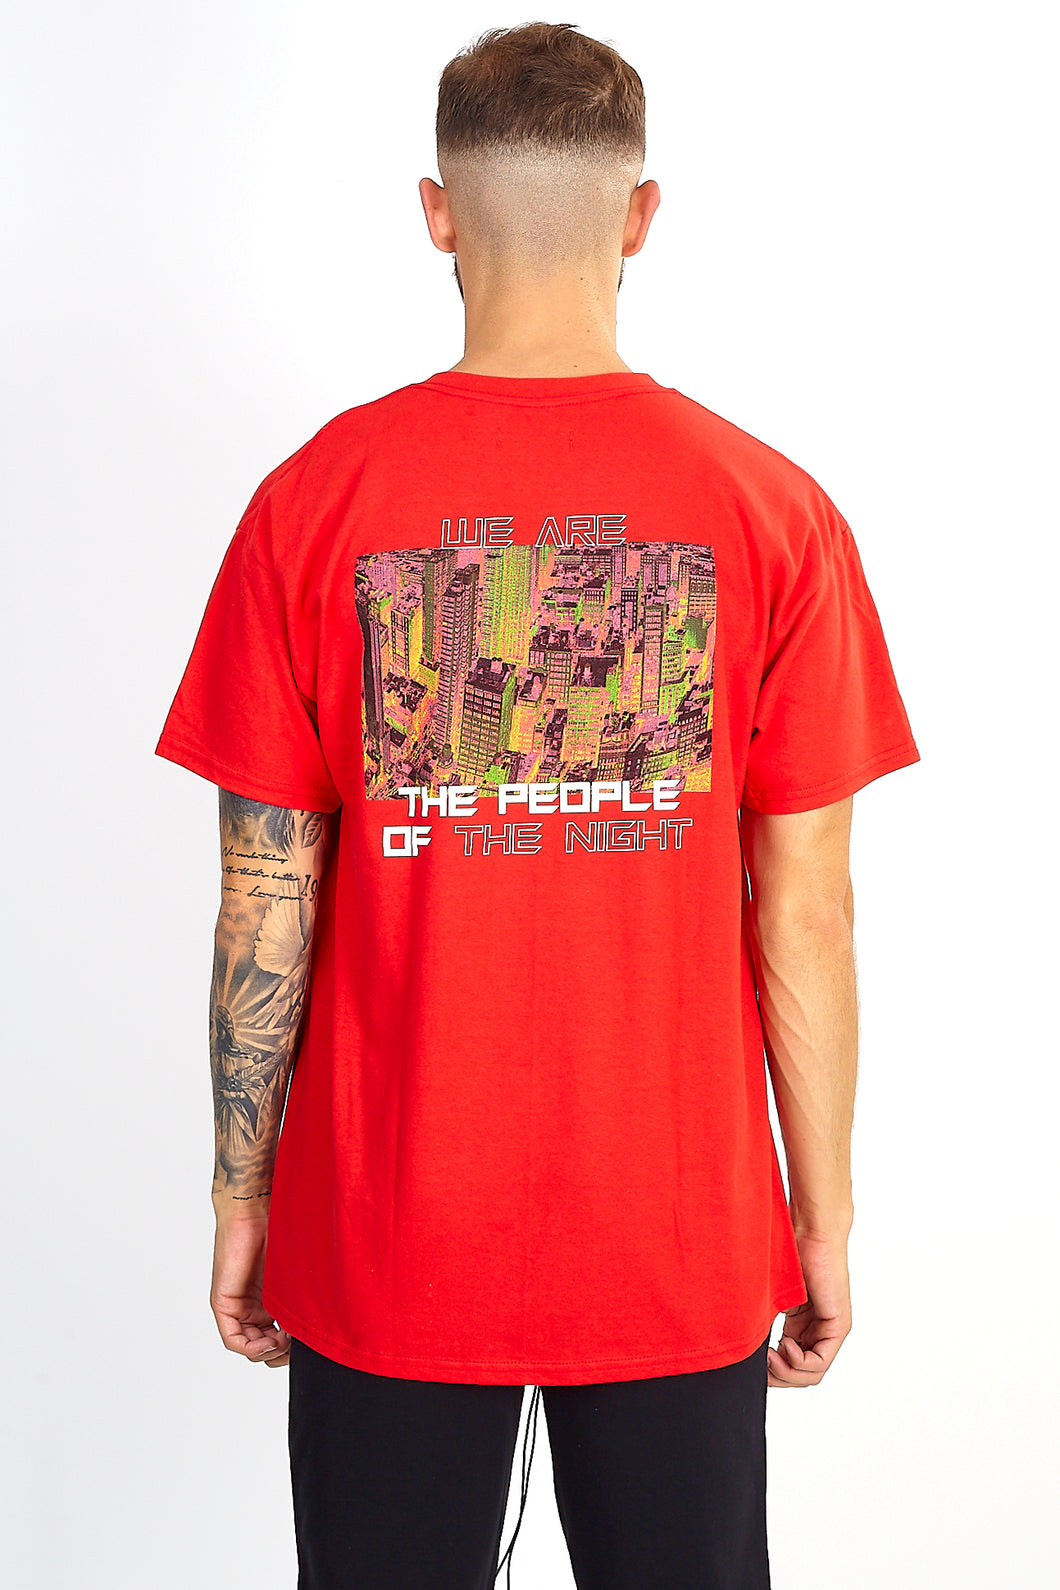 NIGHT ADDICT 'PEOPLE OF THE NIGHT' BACK PRINT TEE - RED